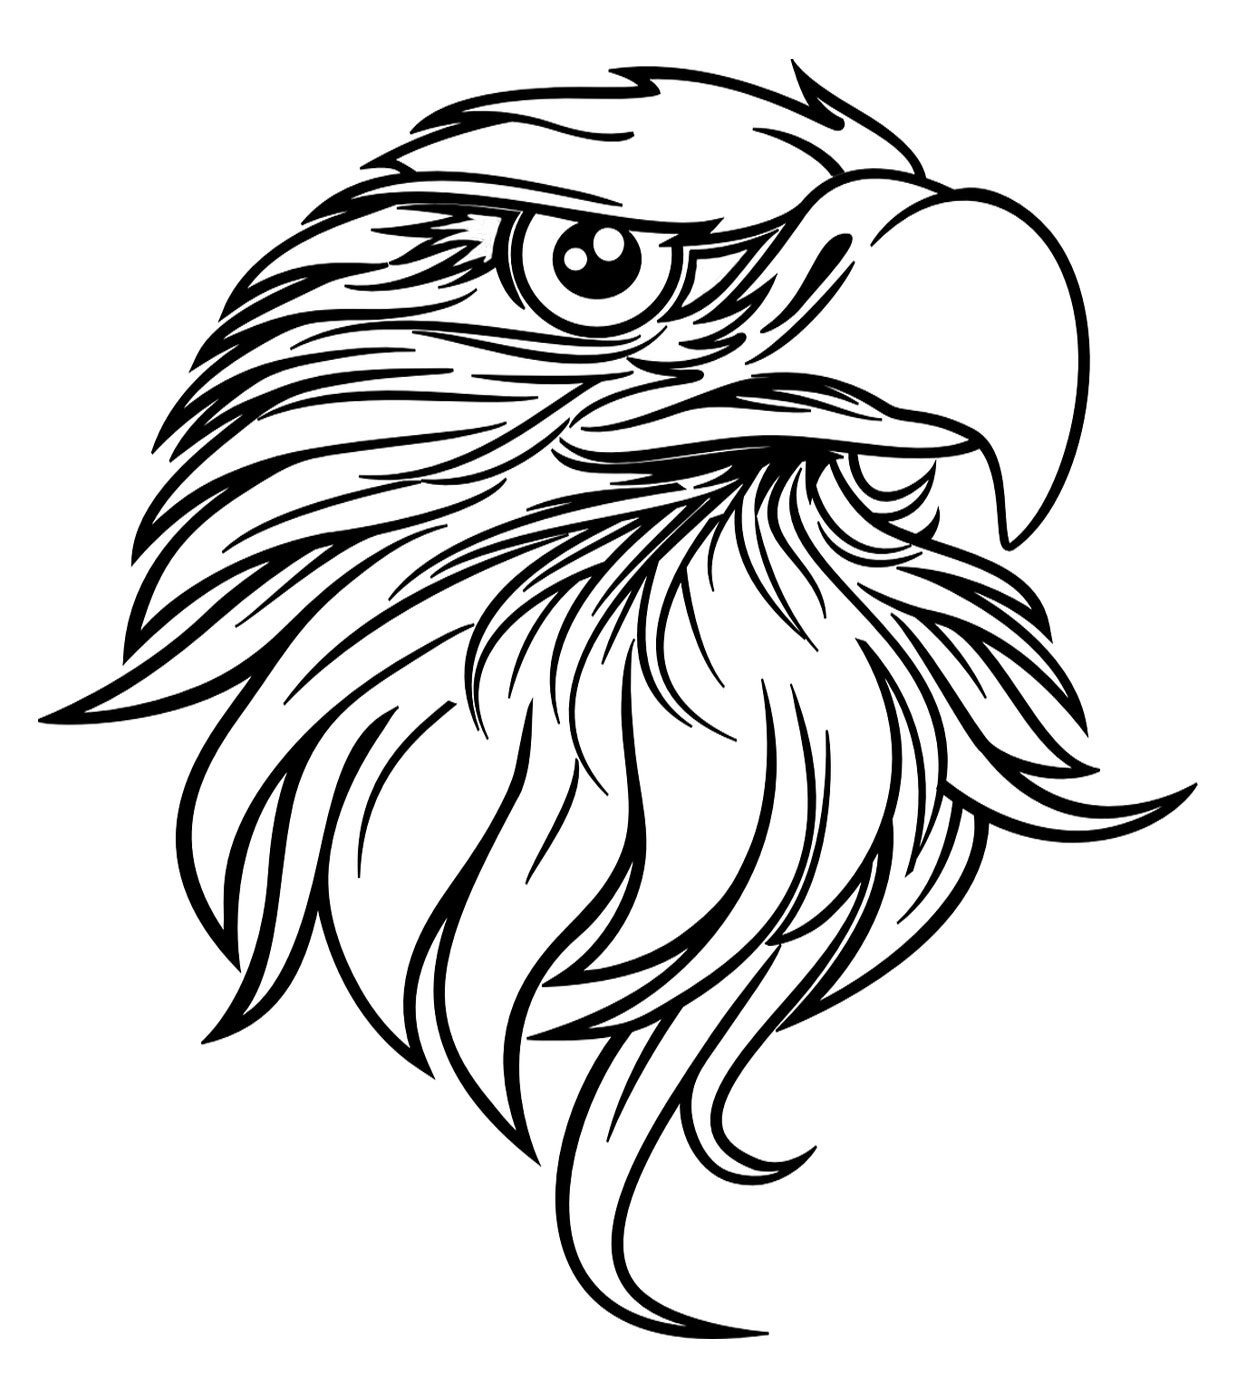 coloring pages of eagles free printable bald eagle coloring pages for kids coloring pages of eagles